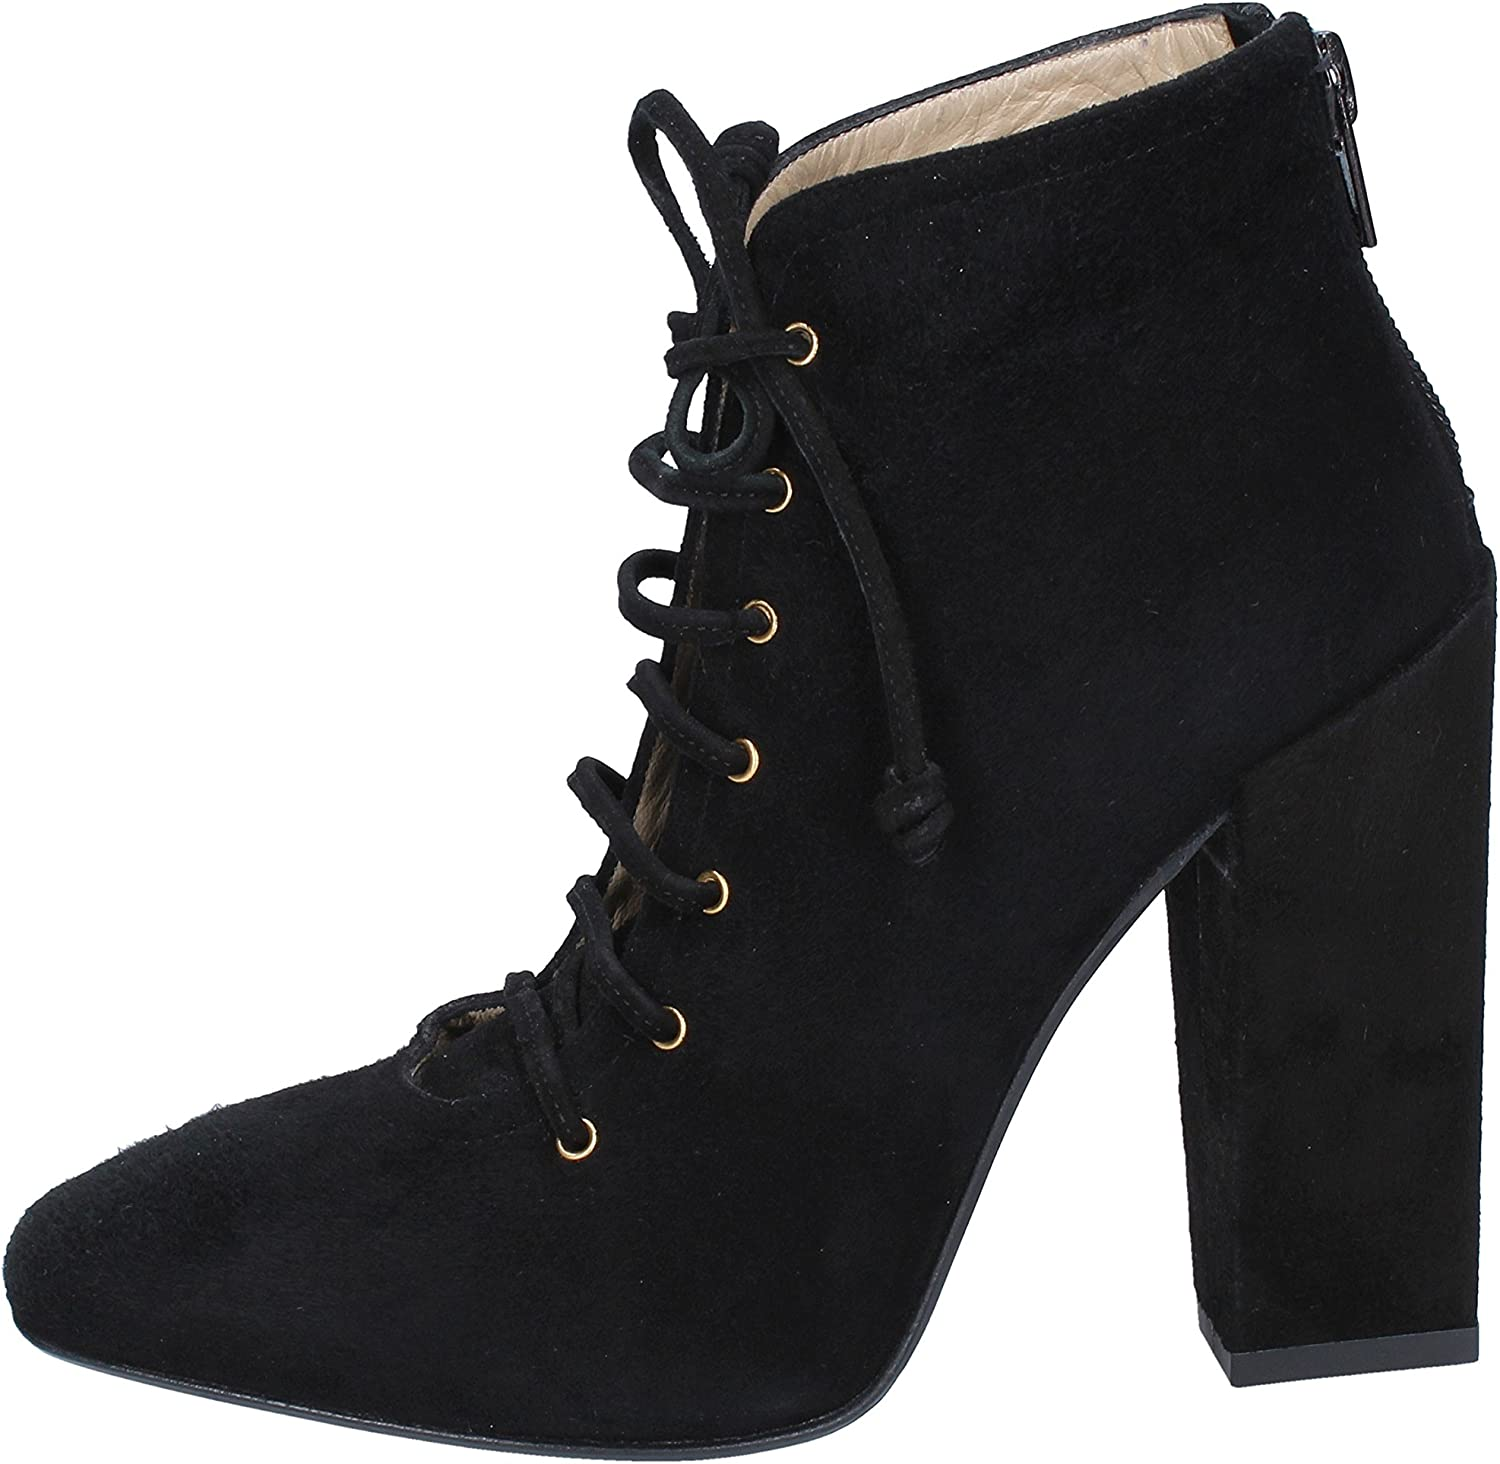 GIANNI MARRA Boots Womens Suede Black